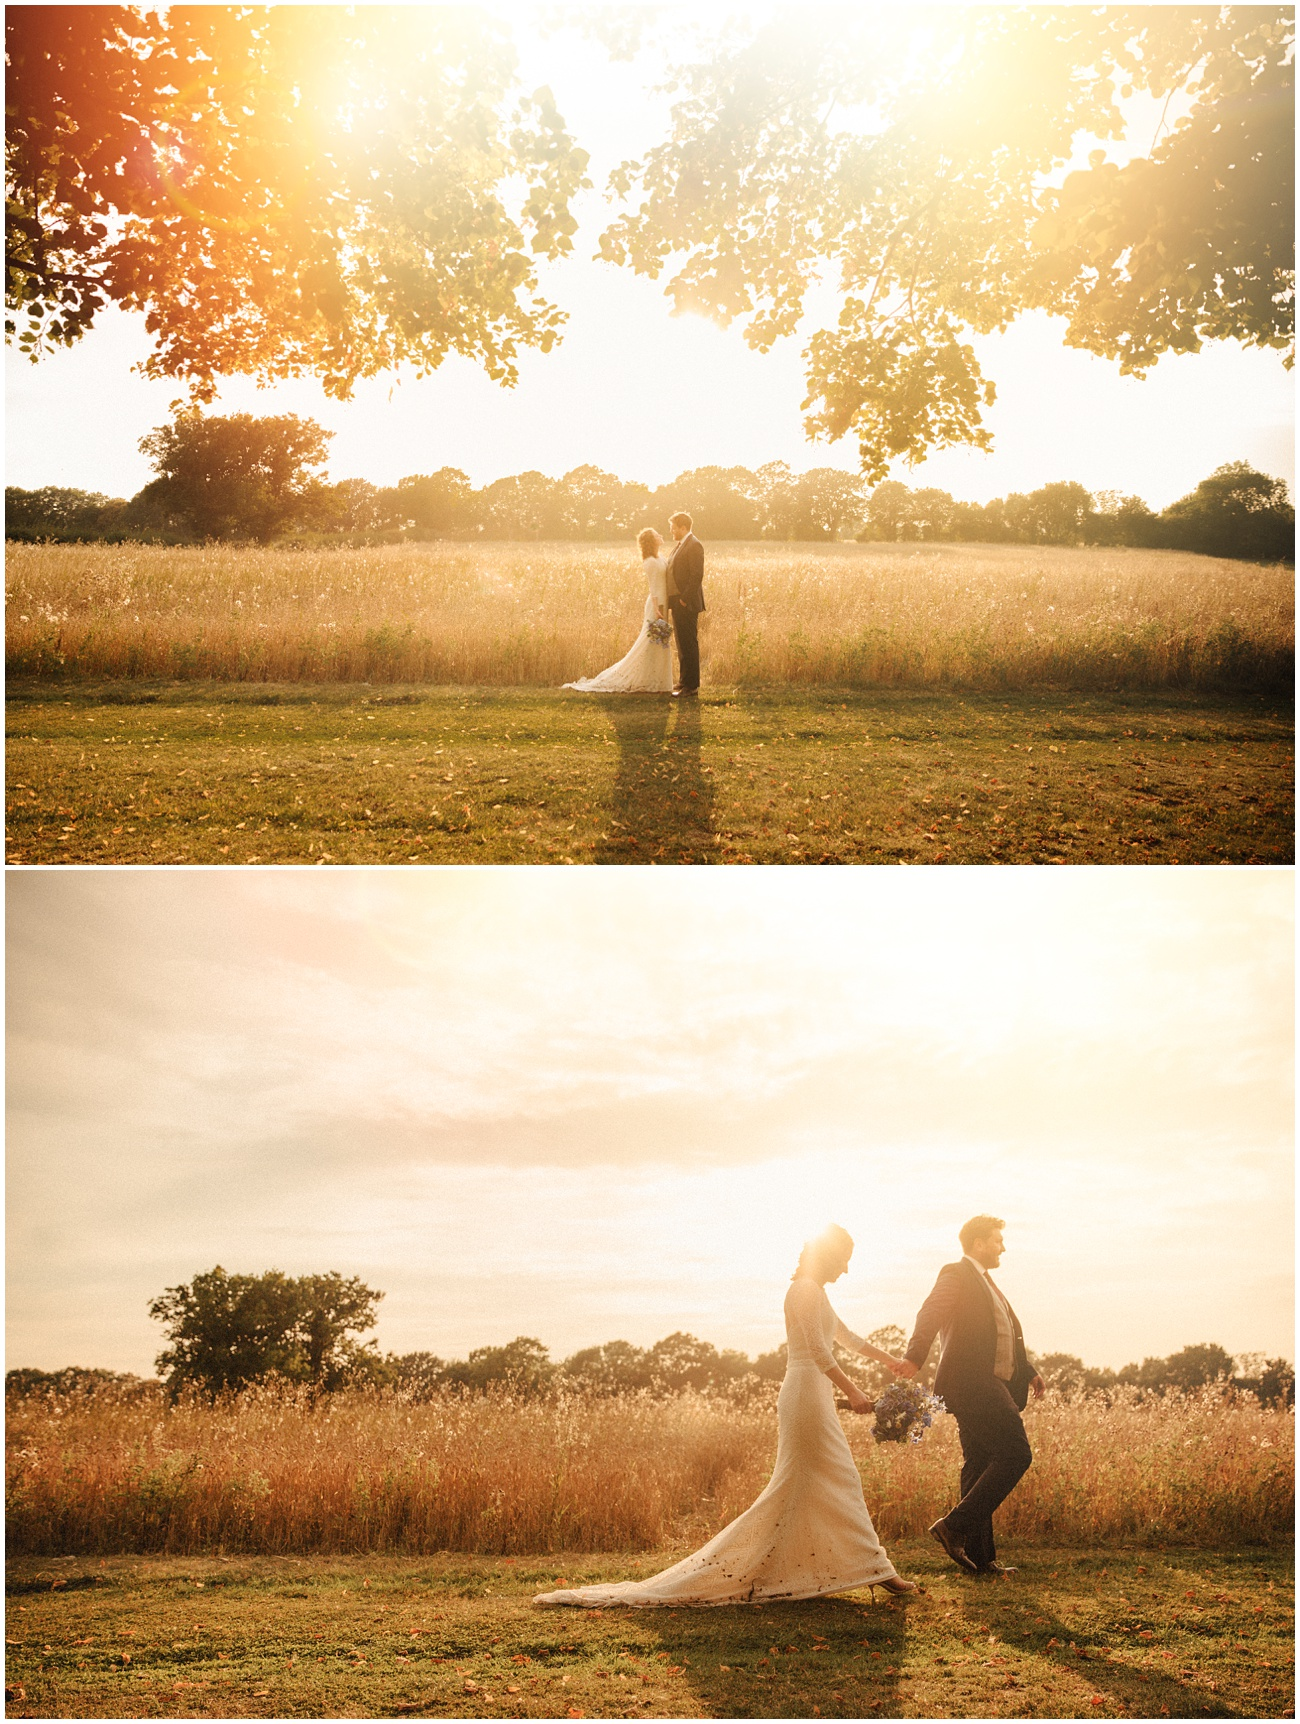 The bride and groom embrace each other during sunset